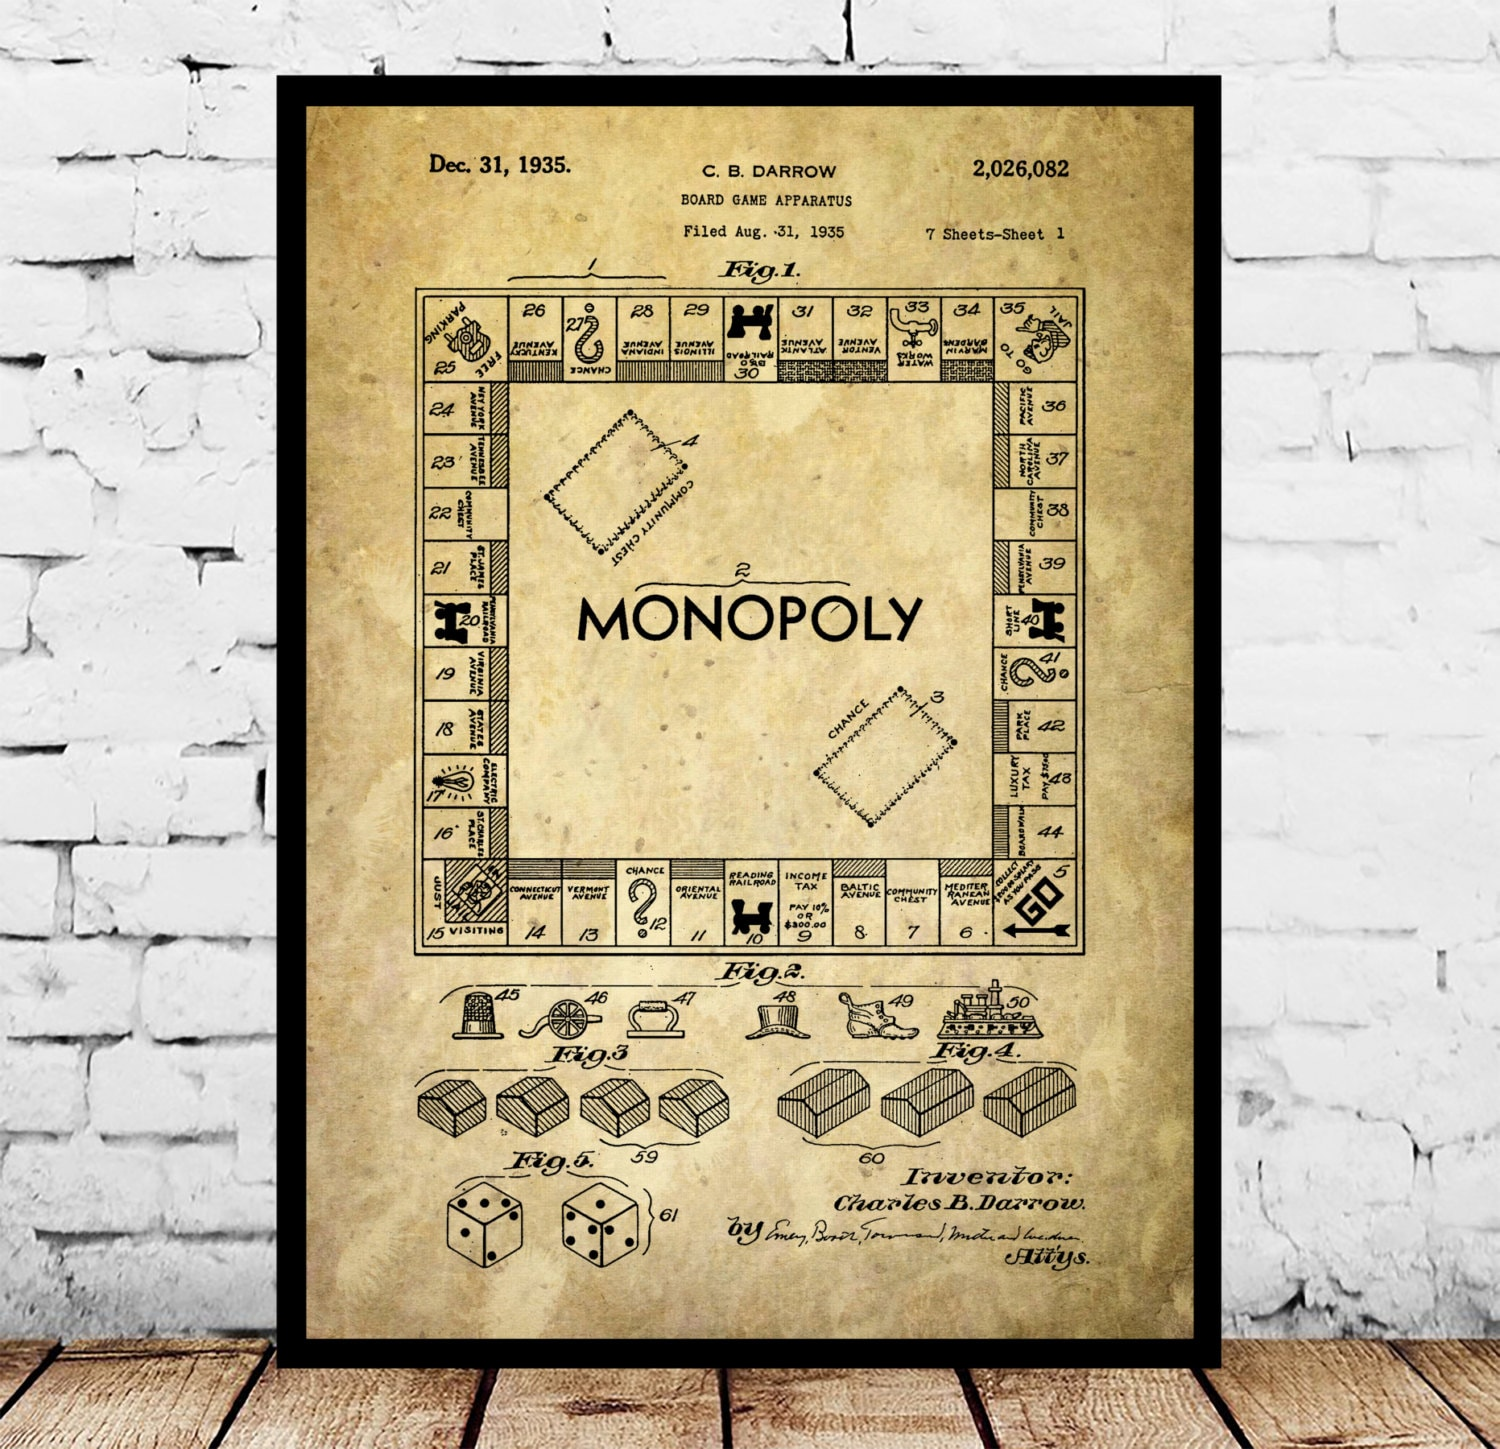 Monopoly poster monopoly patent monopoly print monopoly art monopoly poster monopoly patent monopoly print monopoly art monopoly blueprint monopoly wall art board game malvernweather Images